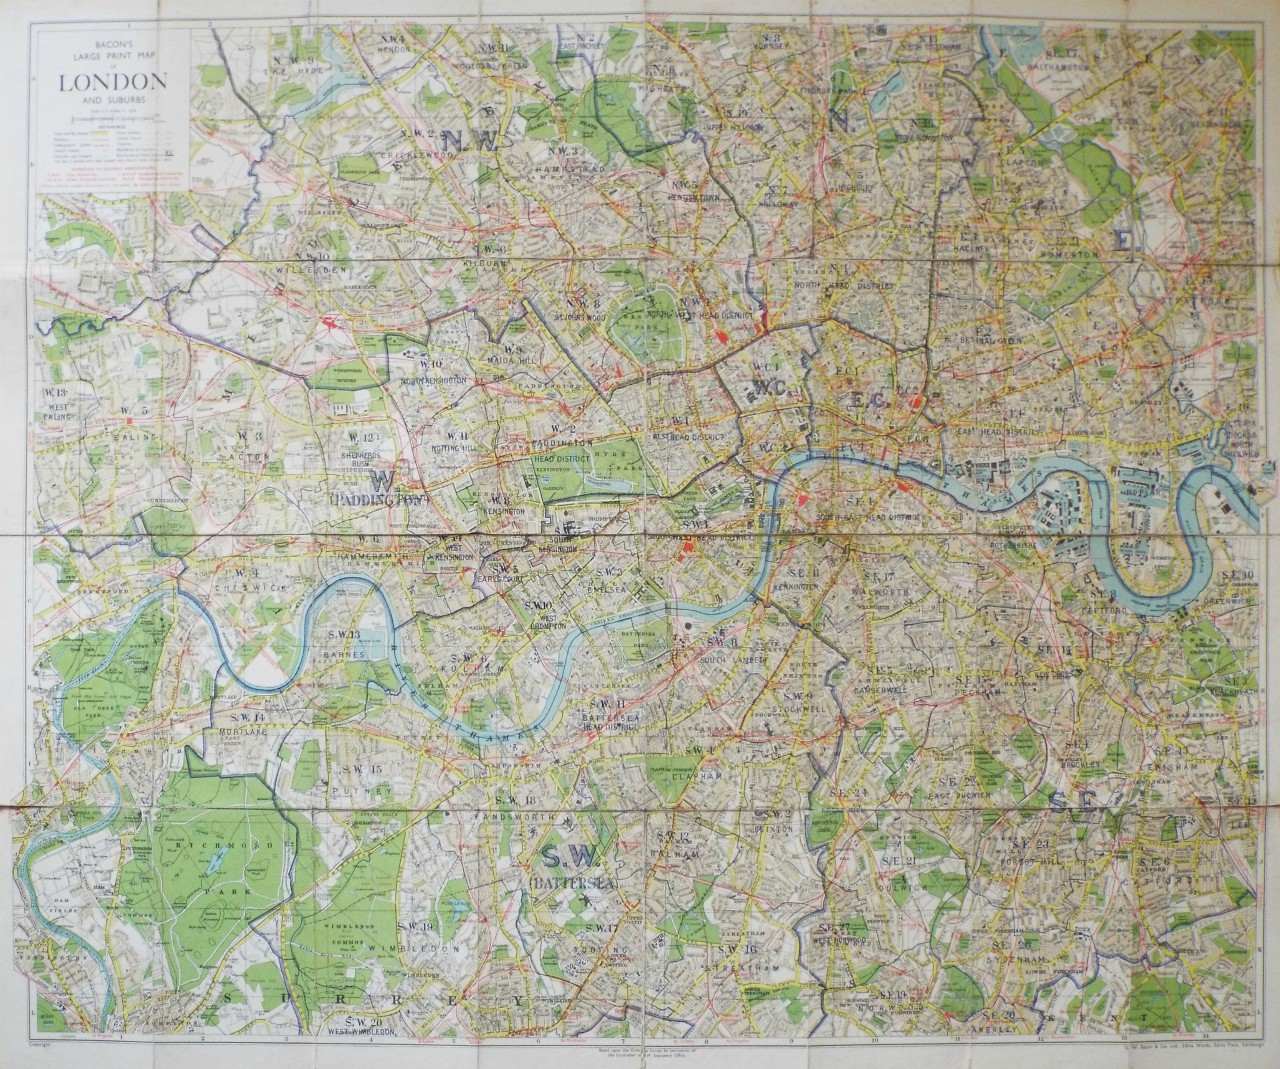 Map Of Central London To Print.Antique Map Of Central London